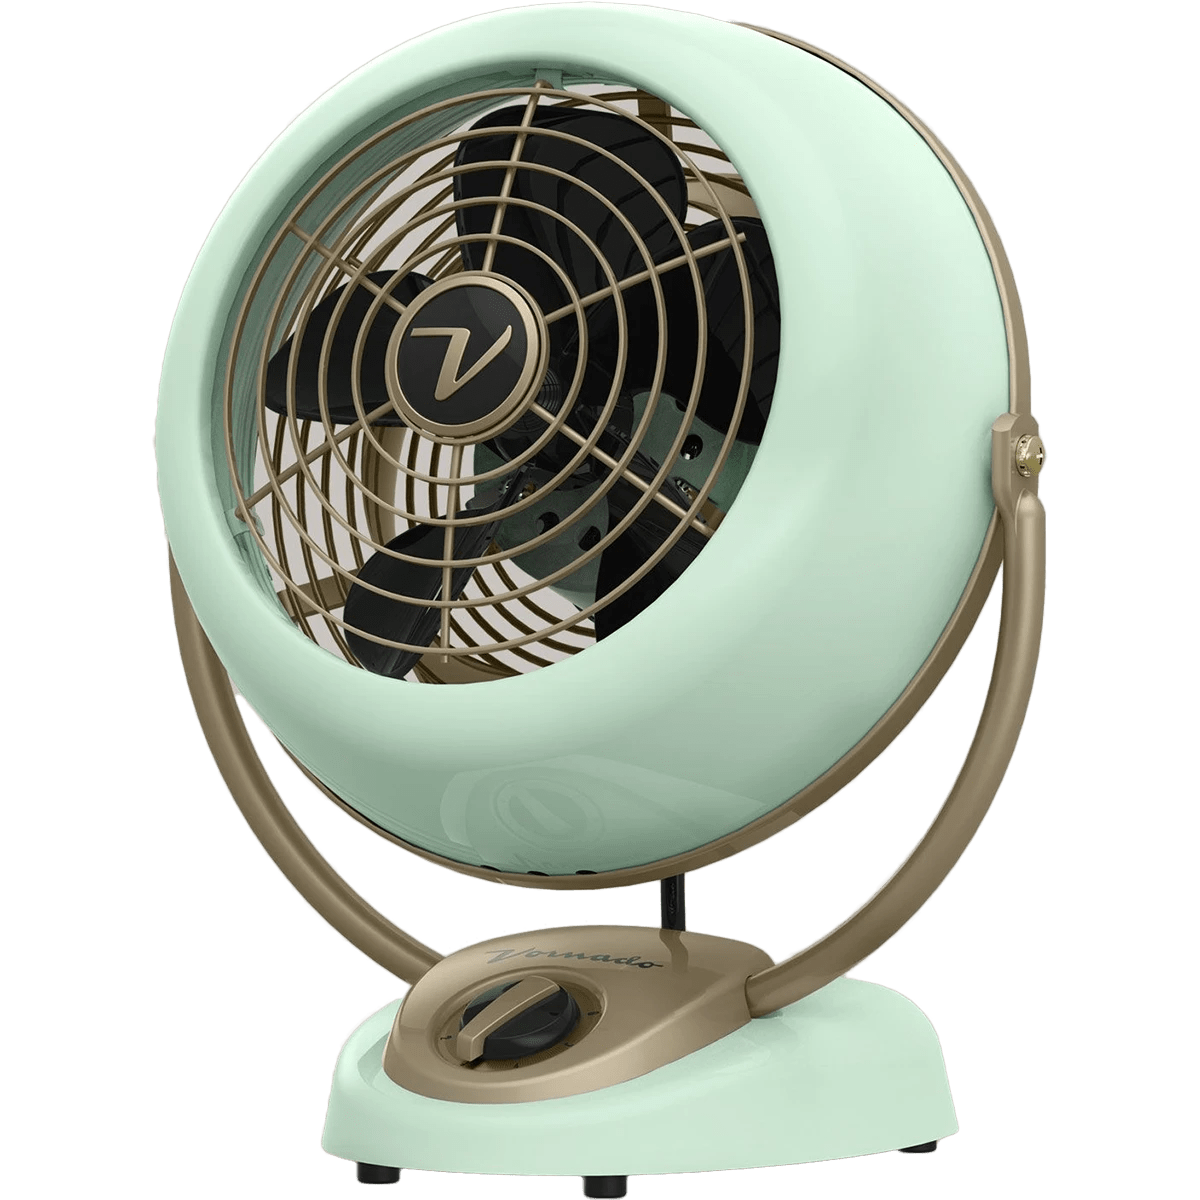 Vornado Fan Vornado Vfan Alchemy Fan